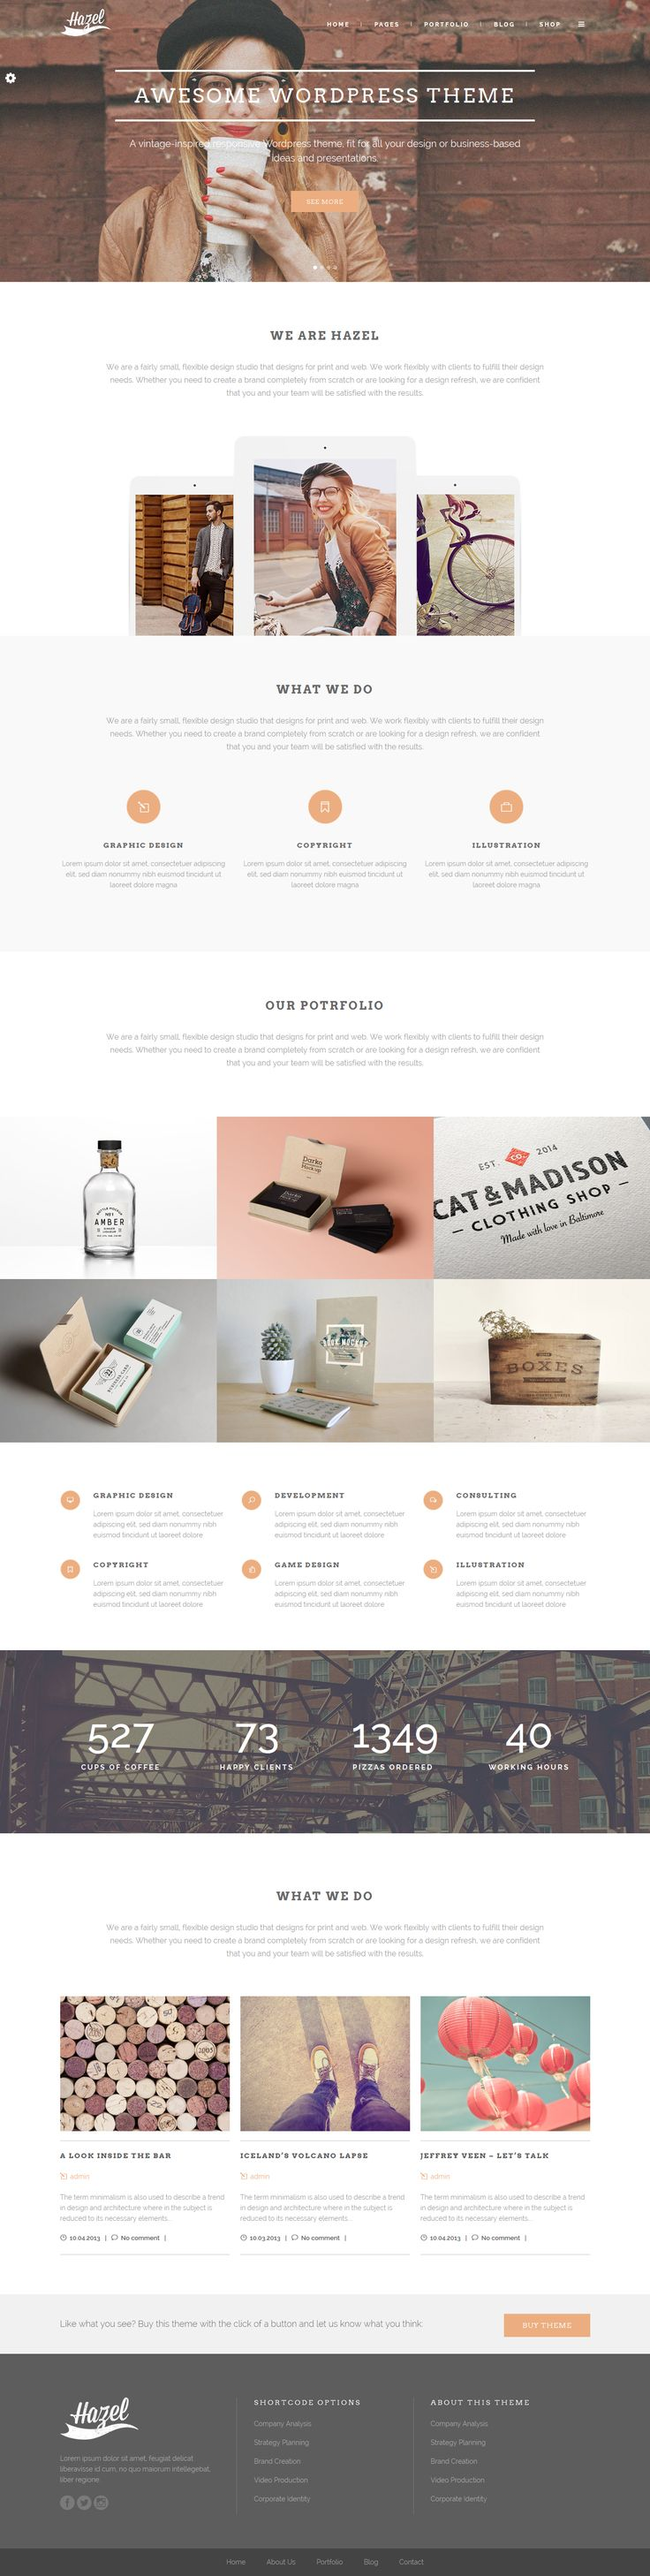 WordPress Awards #web #design